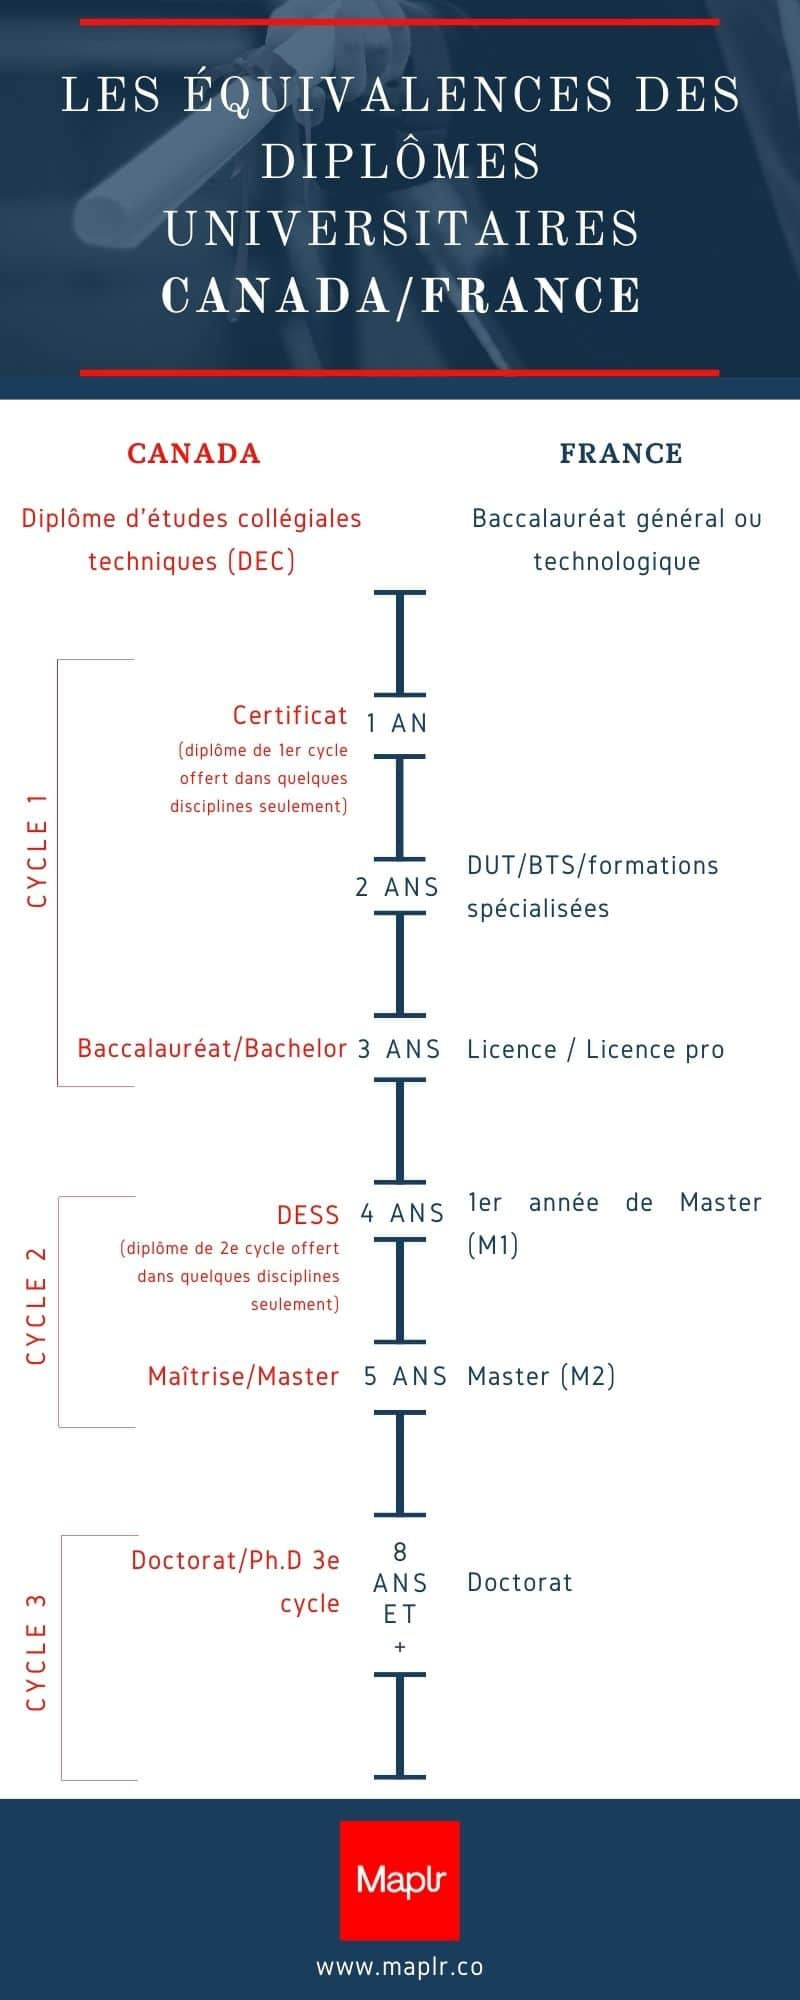 infographie-equivalence-diplome-france-canada-maplr